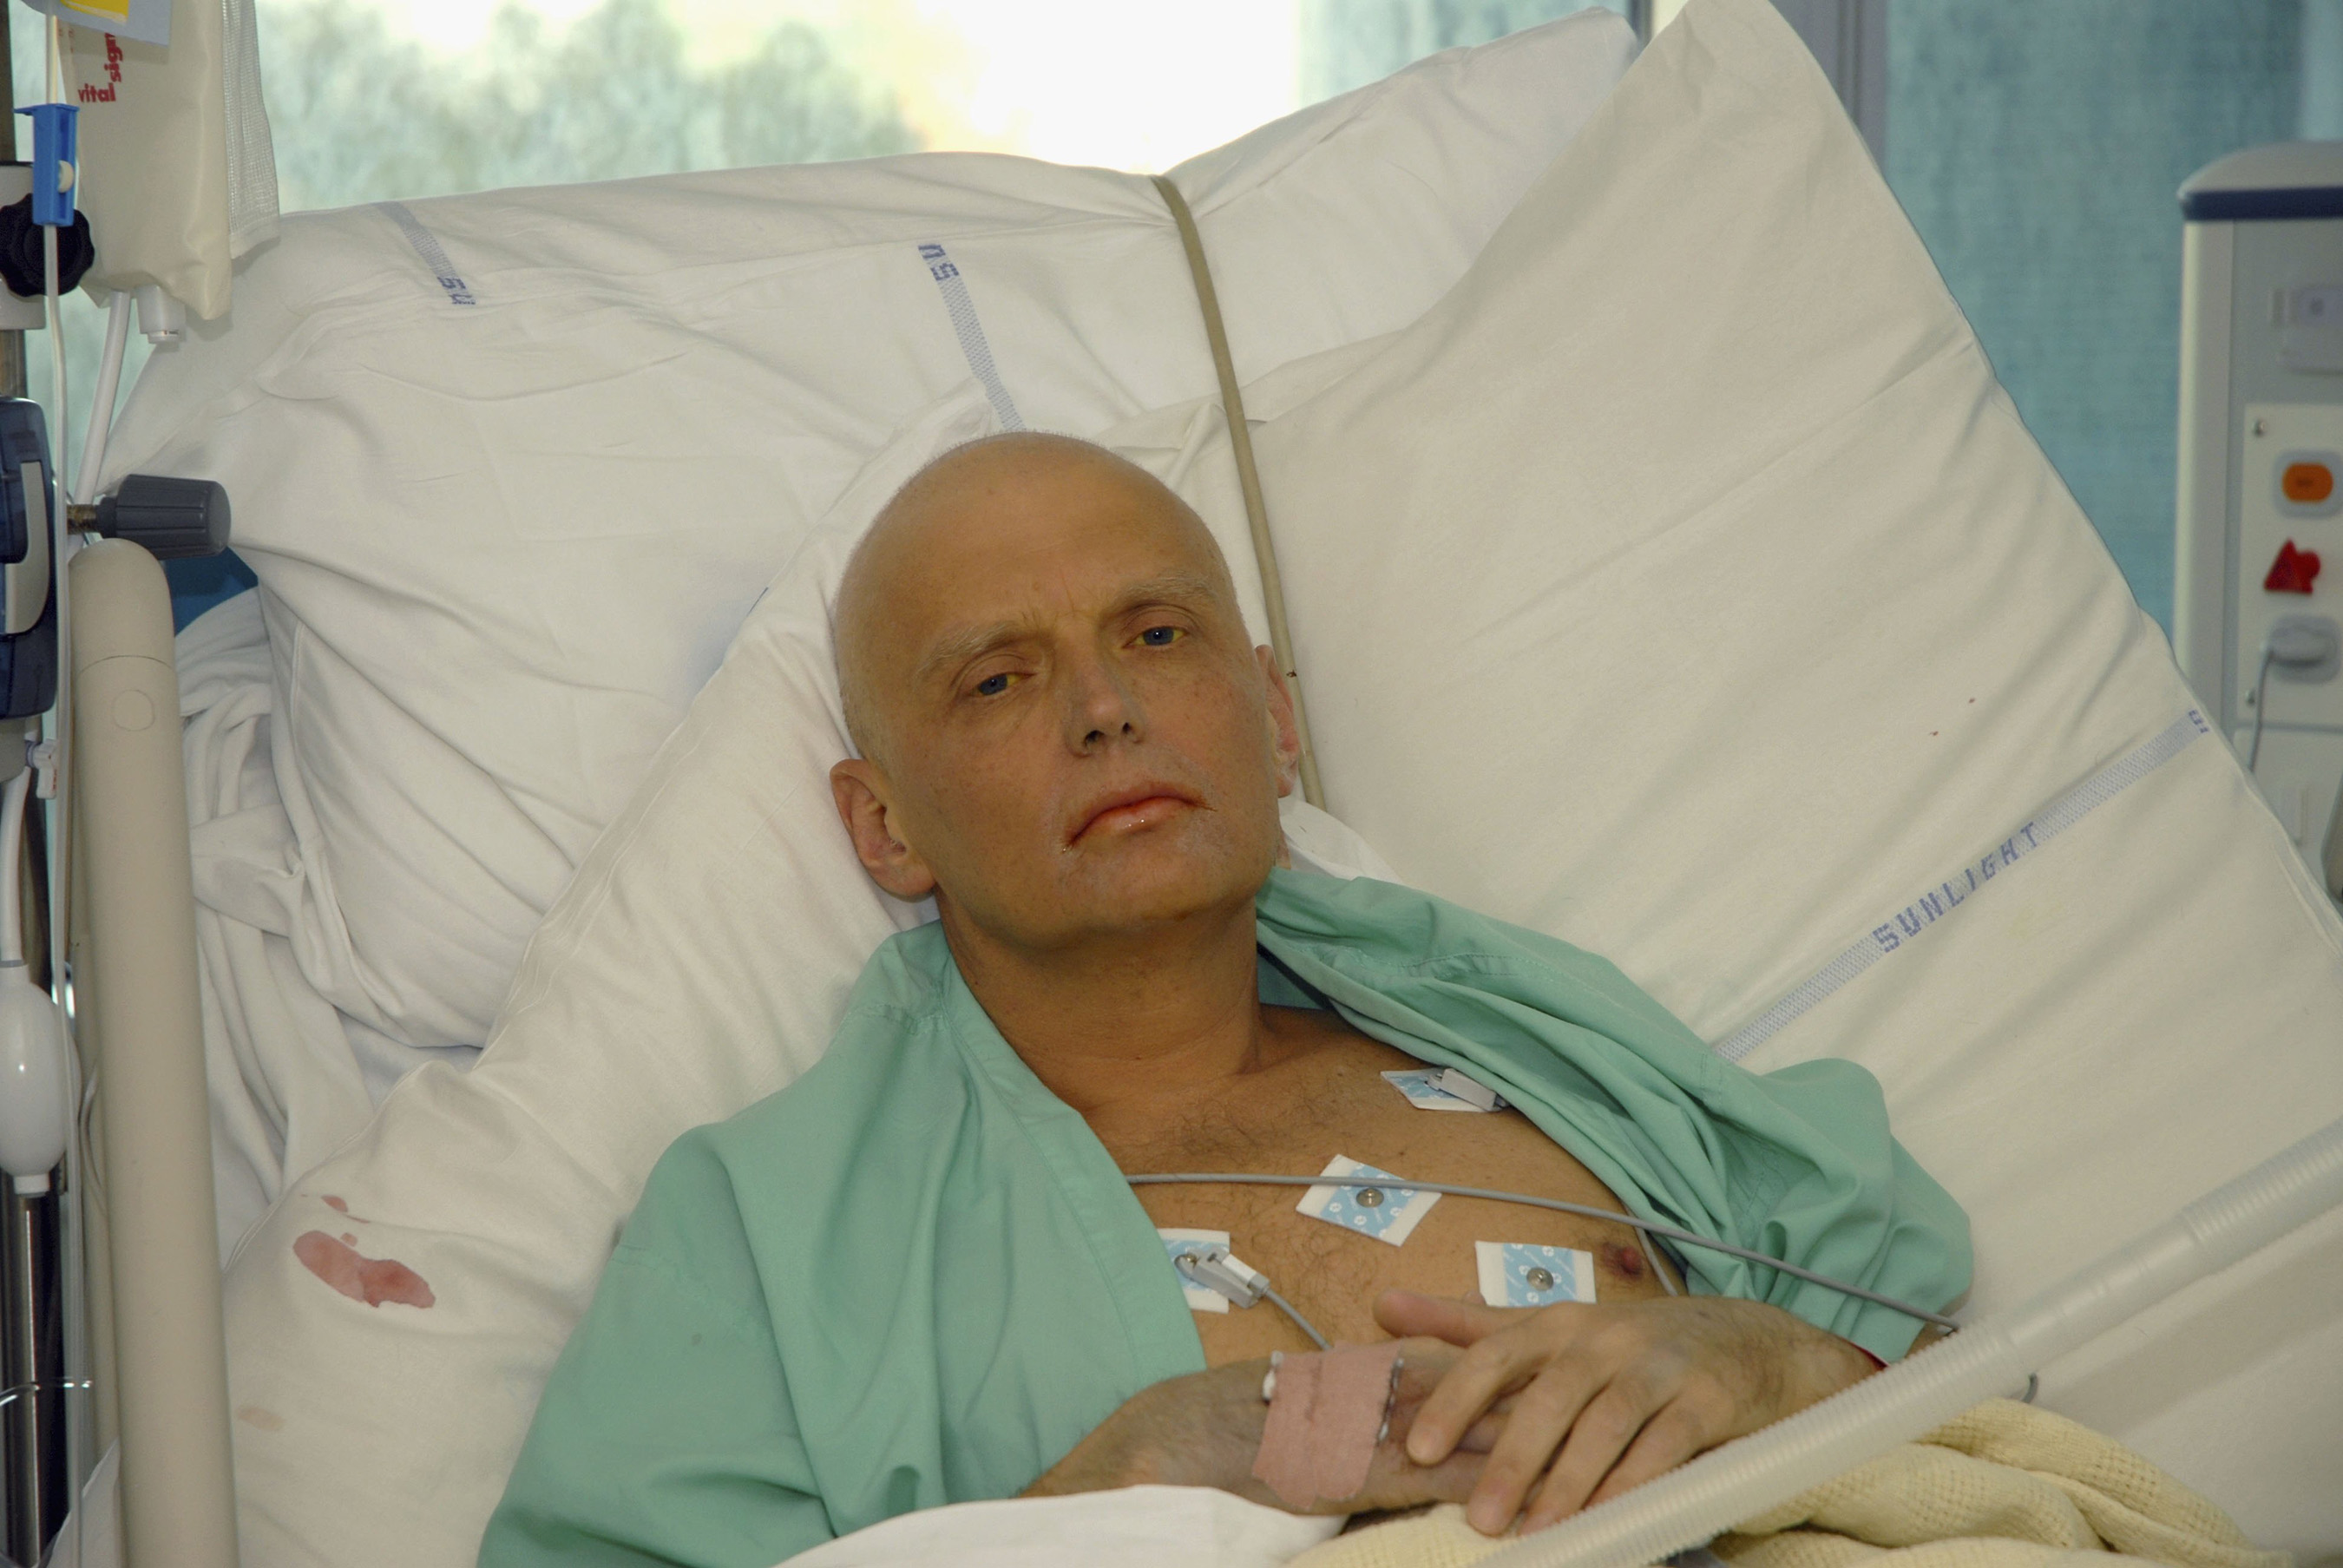 The Kremlin has repeatedly denied having anything to do with Litvinenko's murder